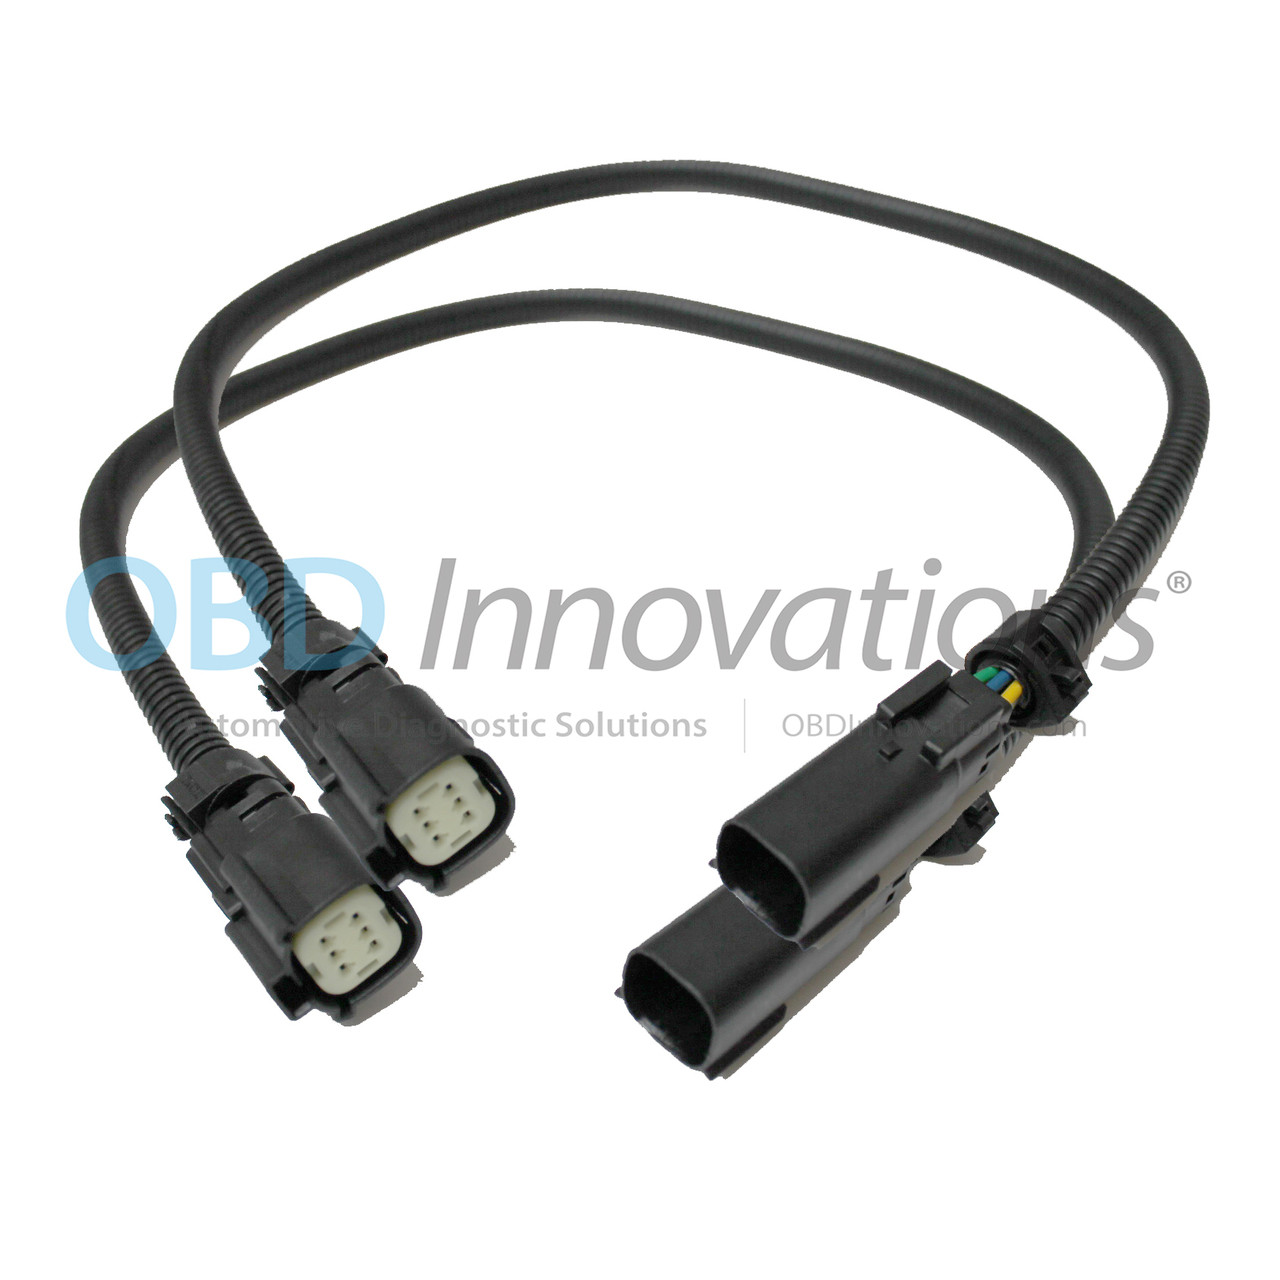 medium resolution of 6 pin o2 sensor extension cable 15 17 mustang gt obd innovations gt wiring harness gt toyota tail light connector harness extension